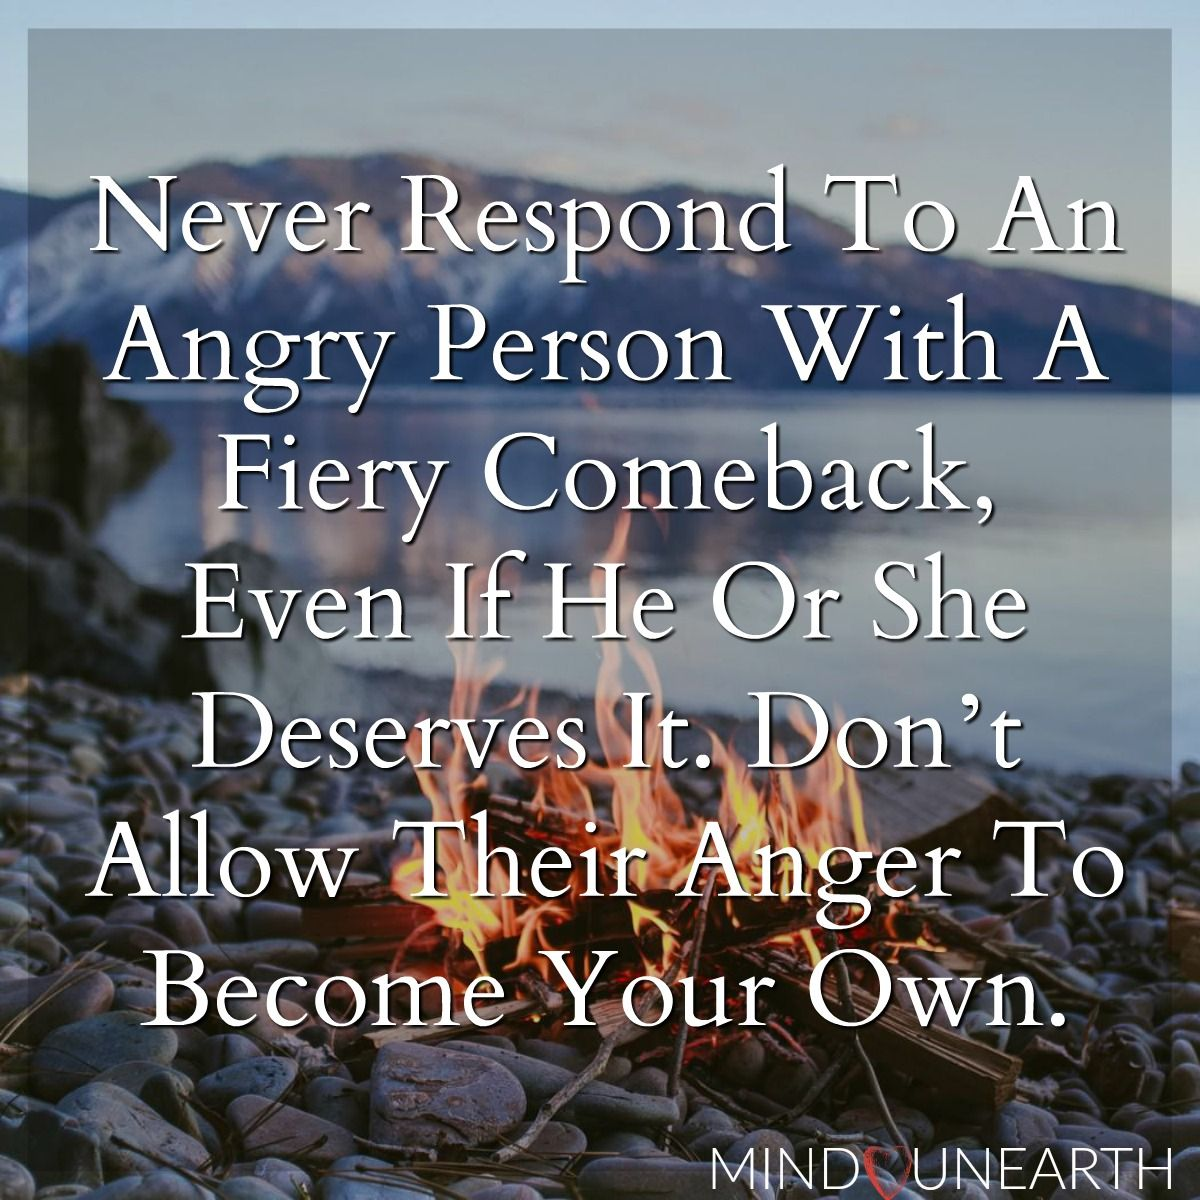 Never Respond To An Angry Person With A Fiery Comeback Even If She Or He Deserves It Don T Allow Their Anger To Become Your Own Encouragement Quotes Inspirational Quotes Angry Person